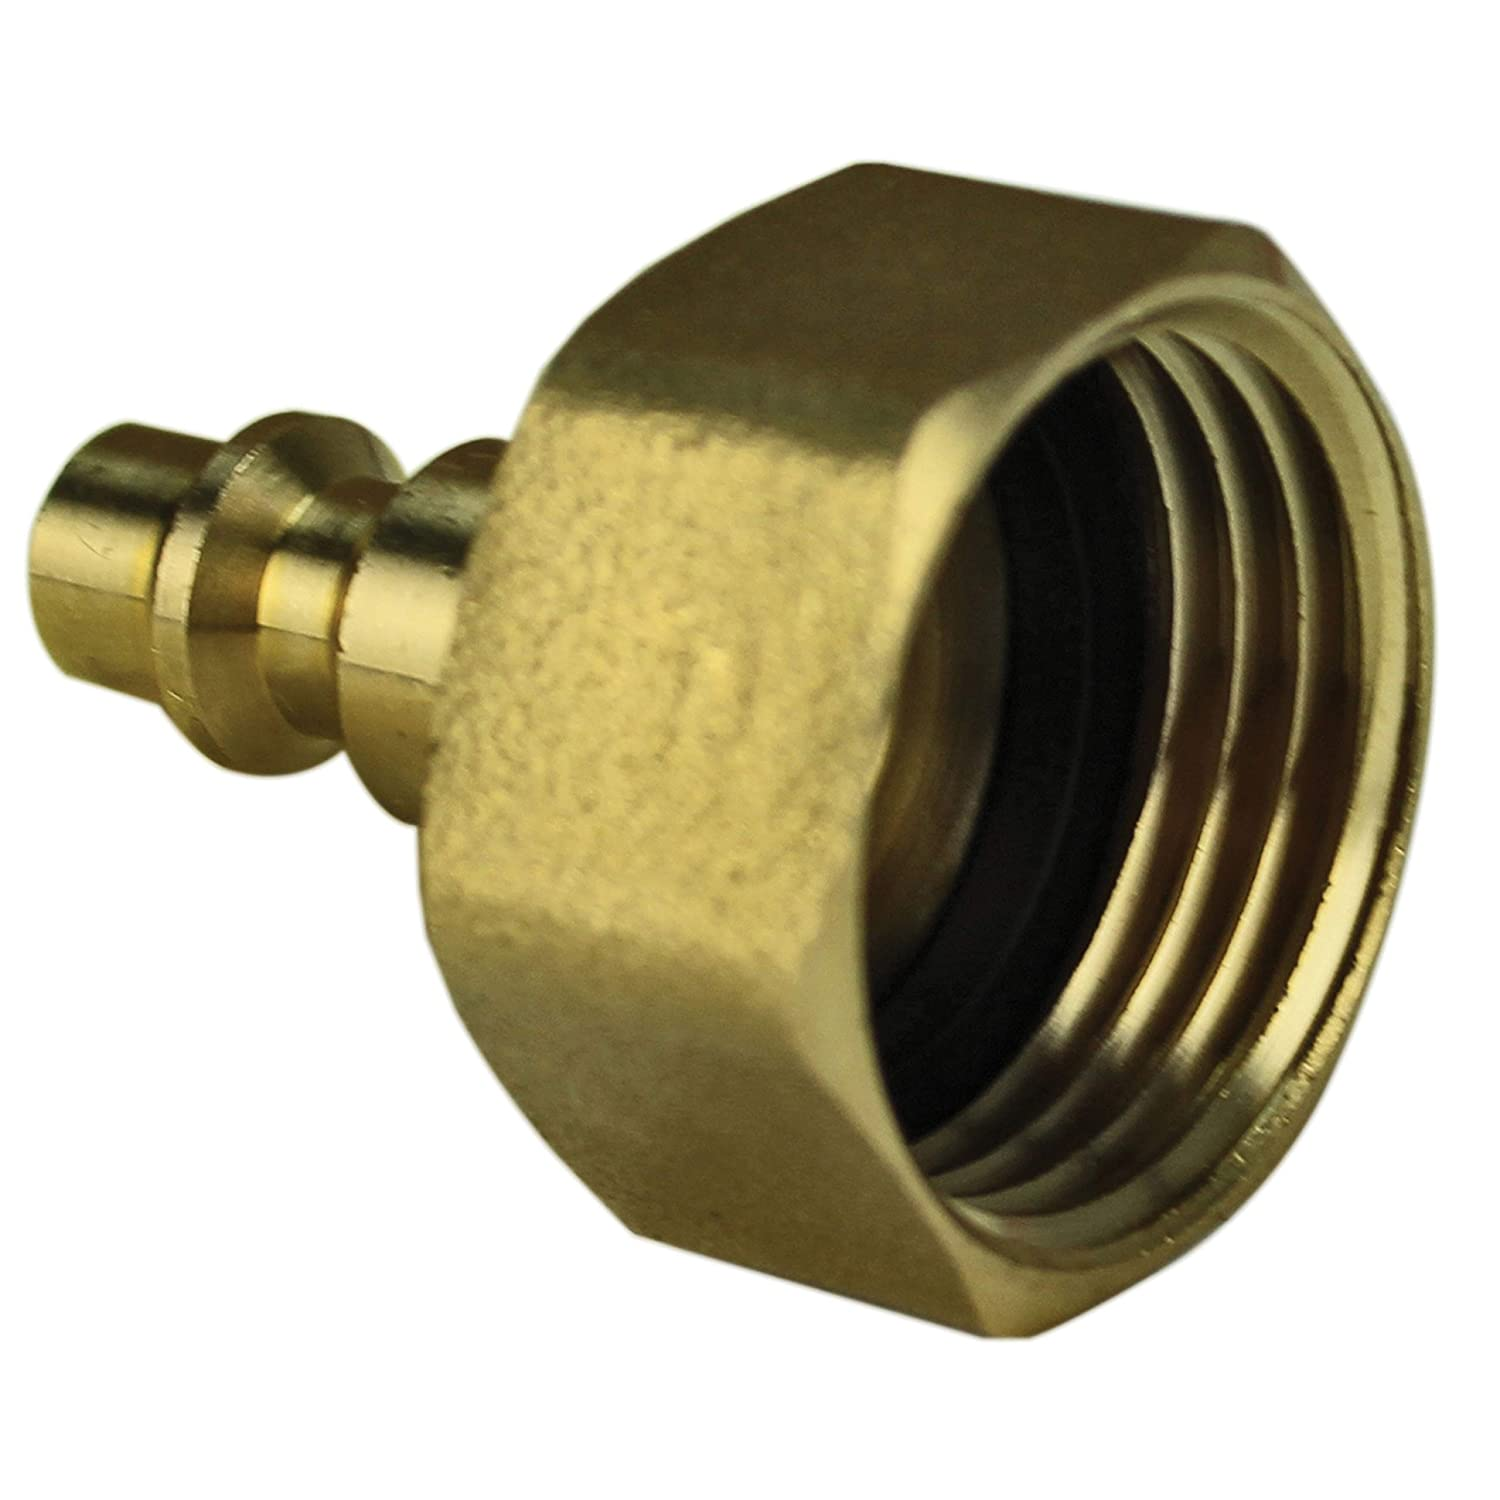 Quick Products QP-QCBPGF Air Compressor Irrigation Connect Blow Out Fitting Female